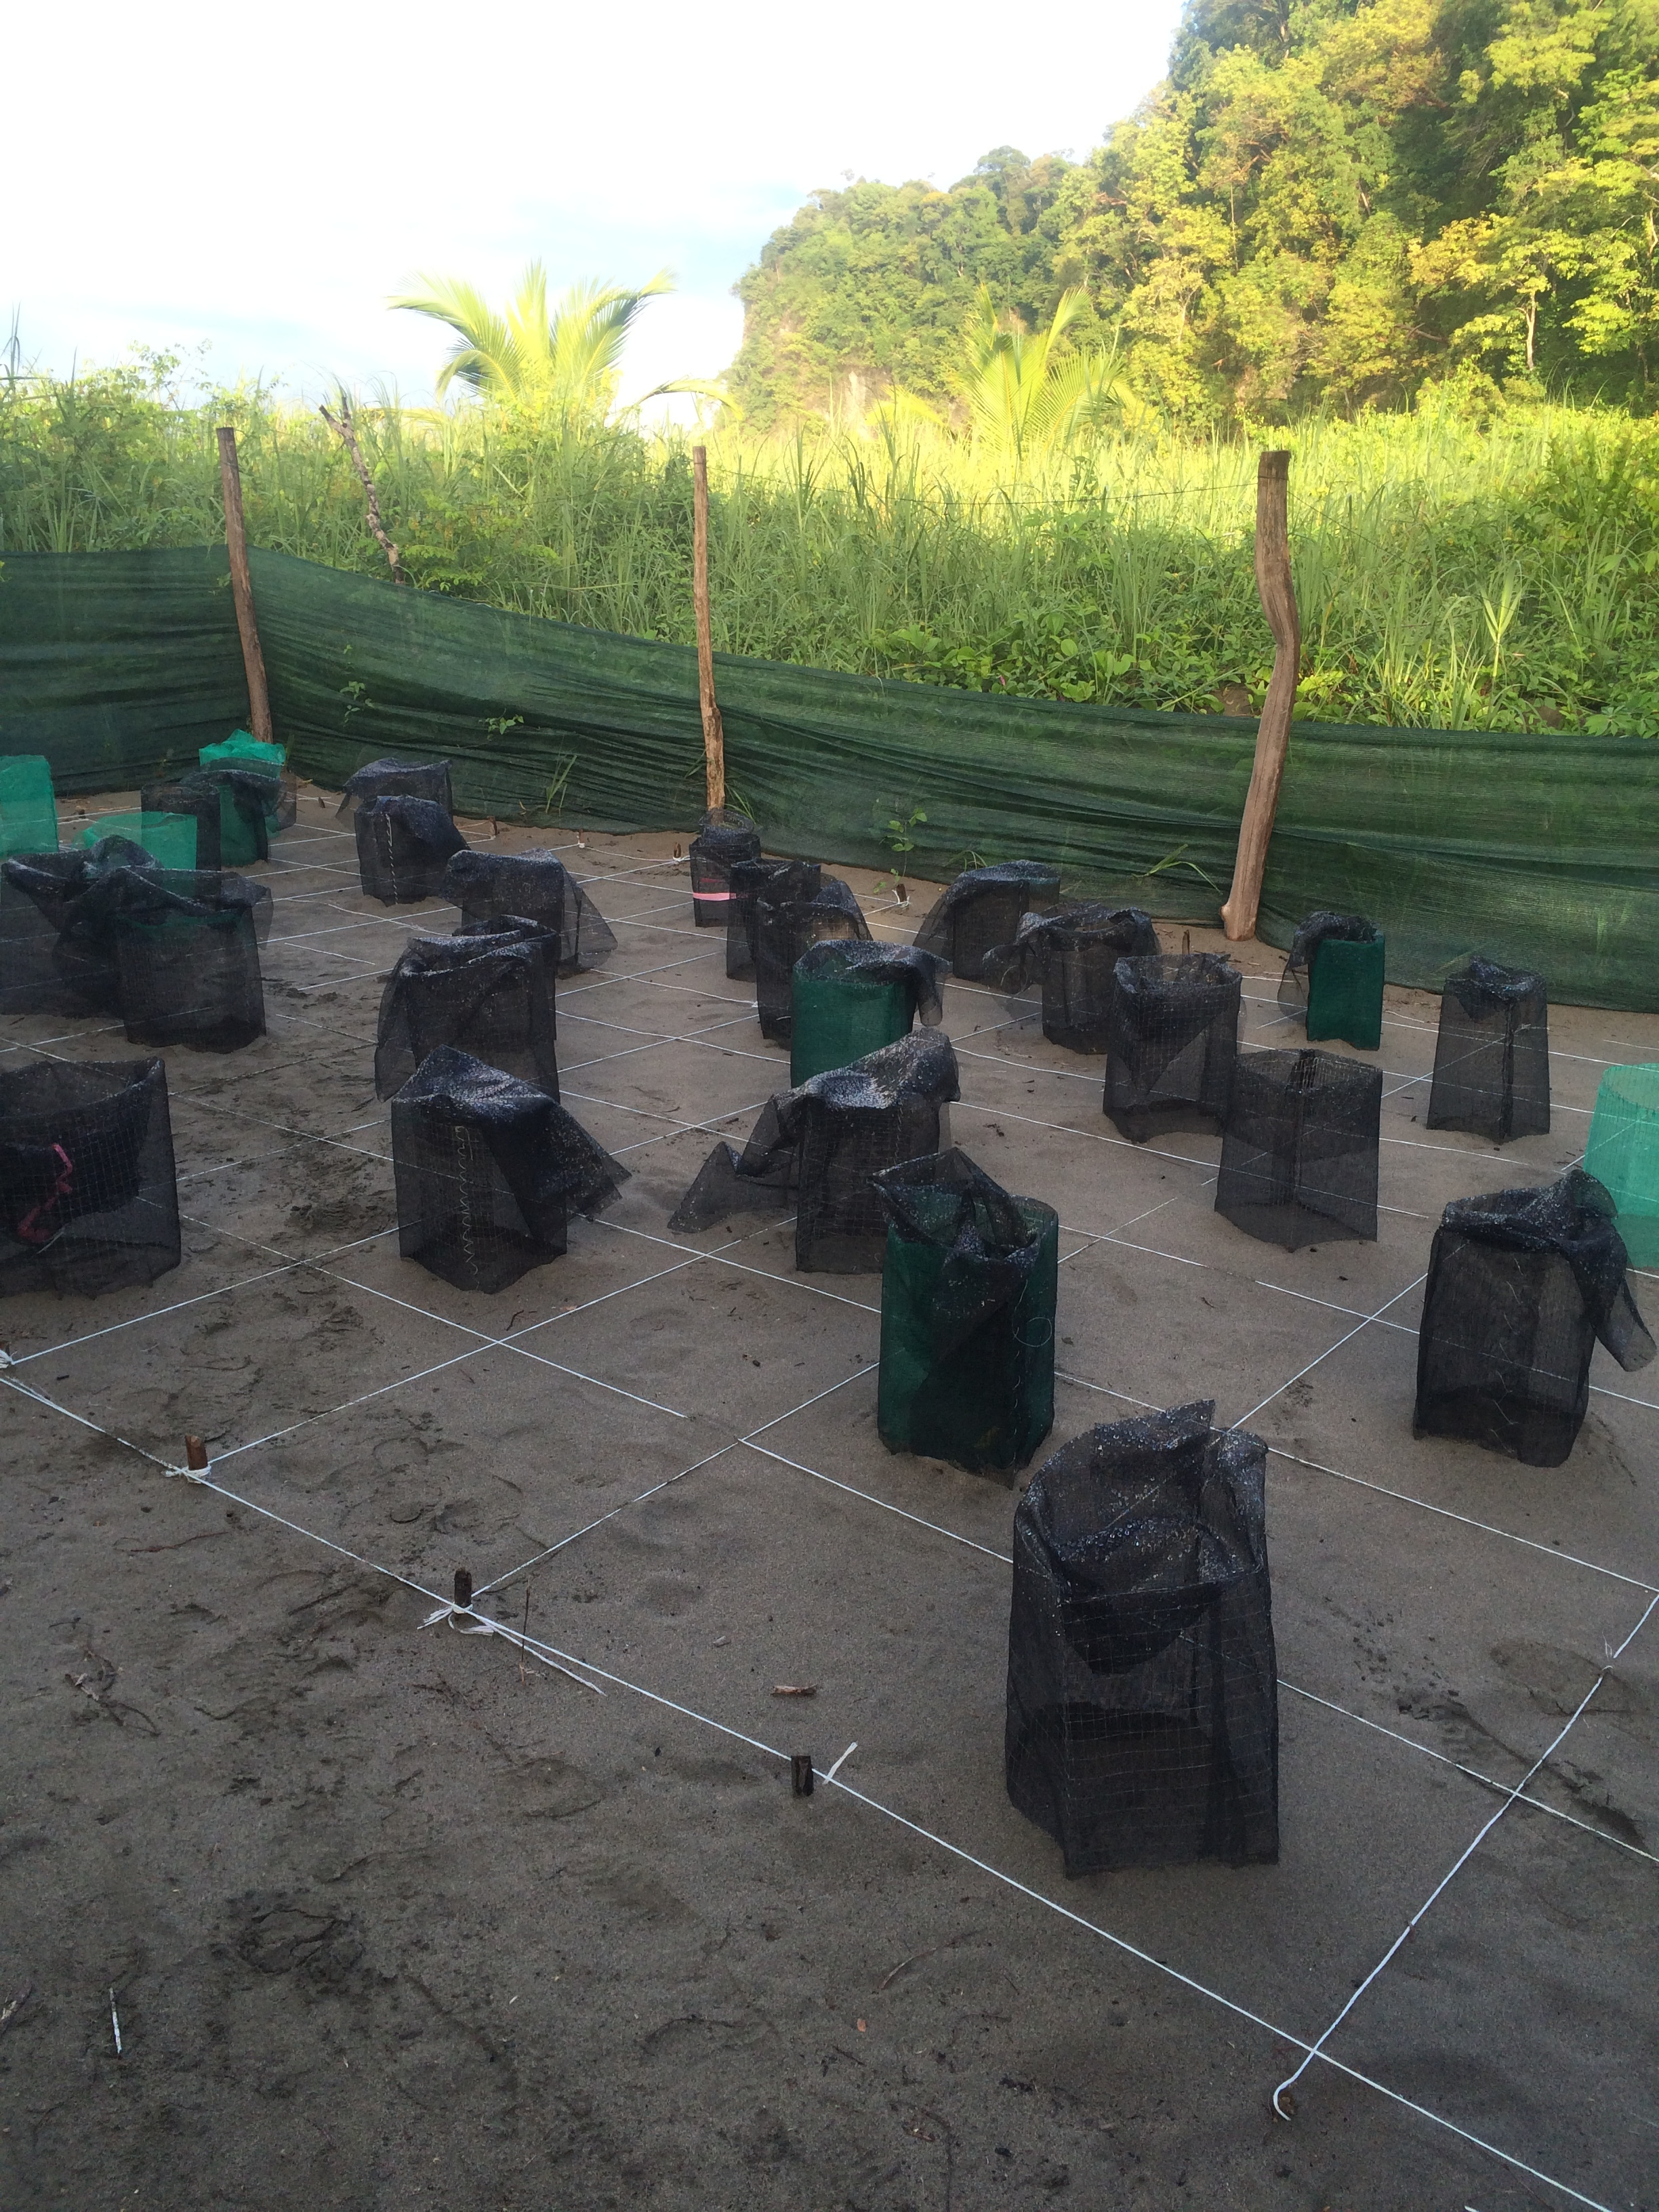 Sea turtle hatchery monitored 24/7 by the patrol team.